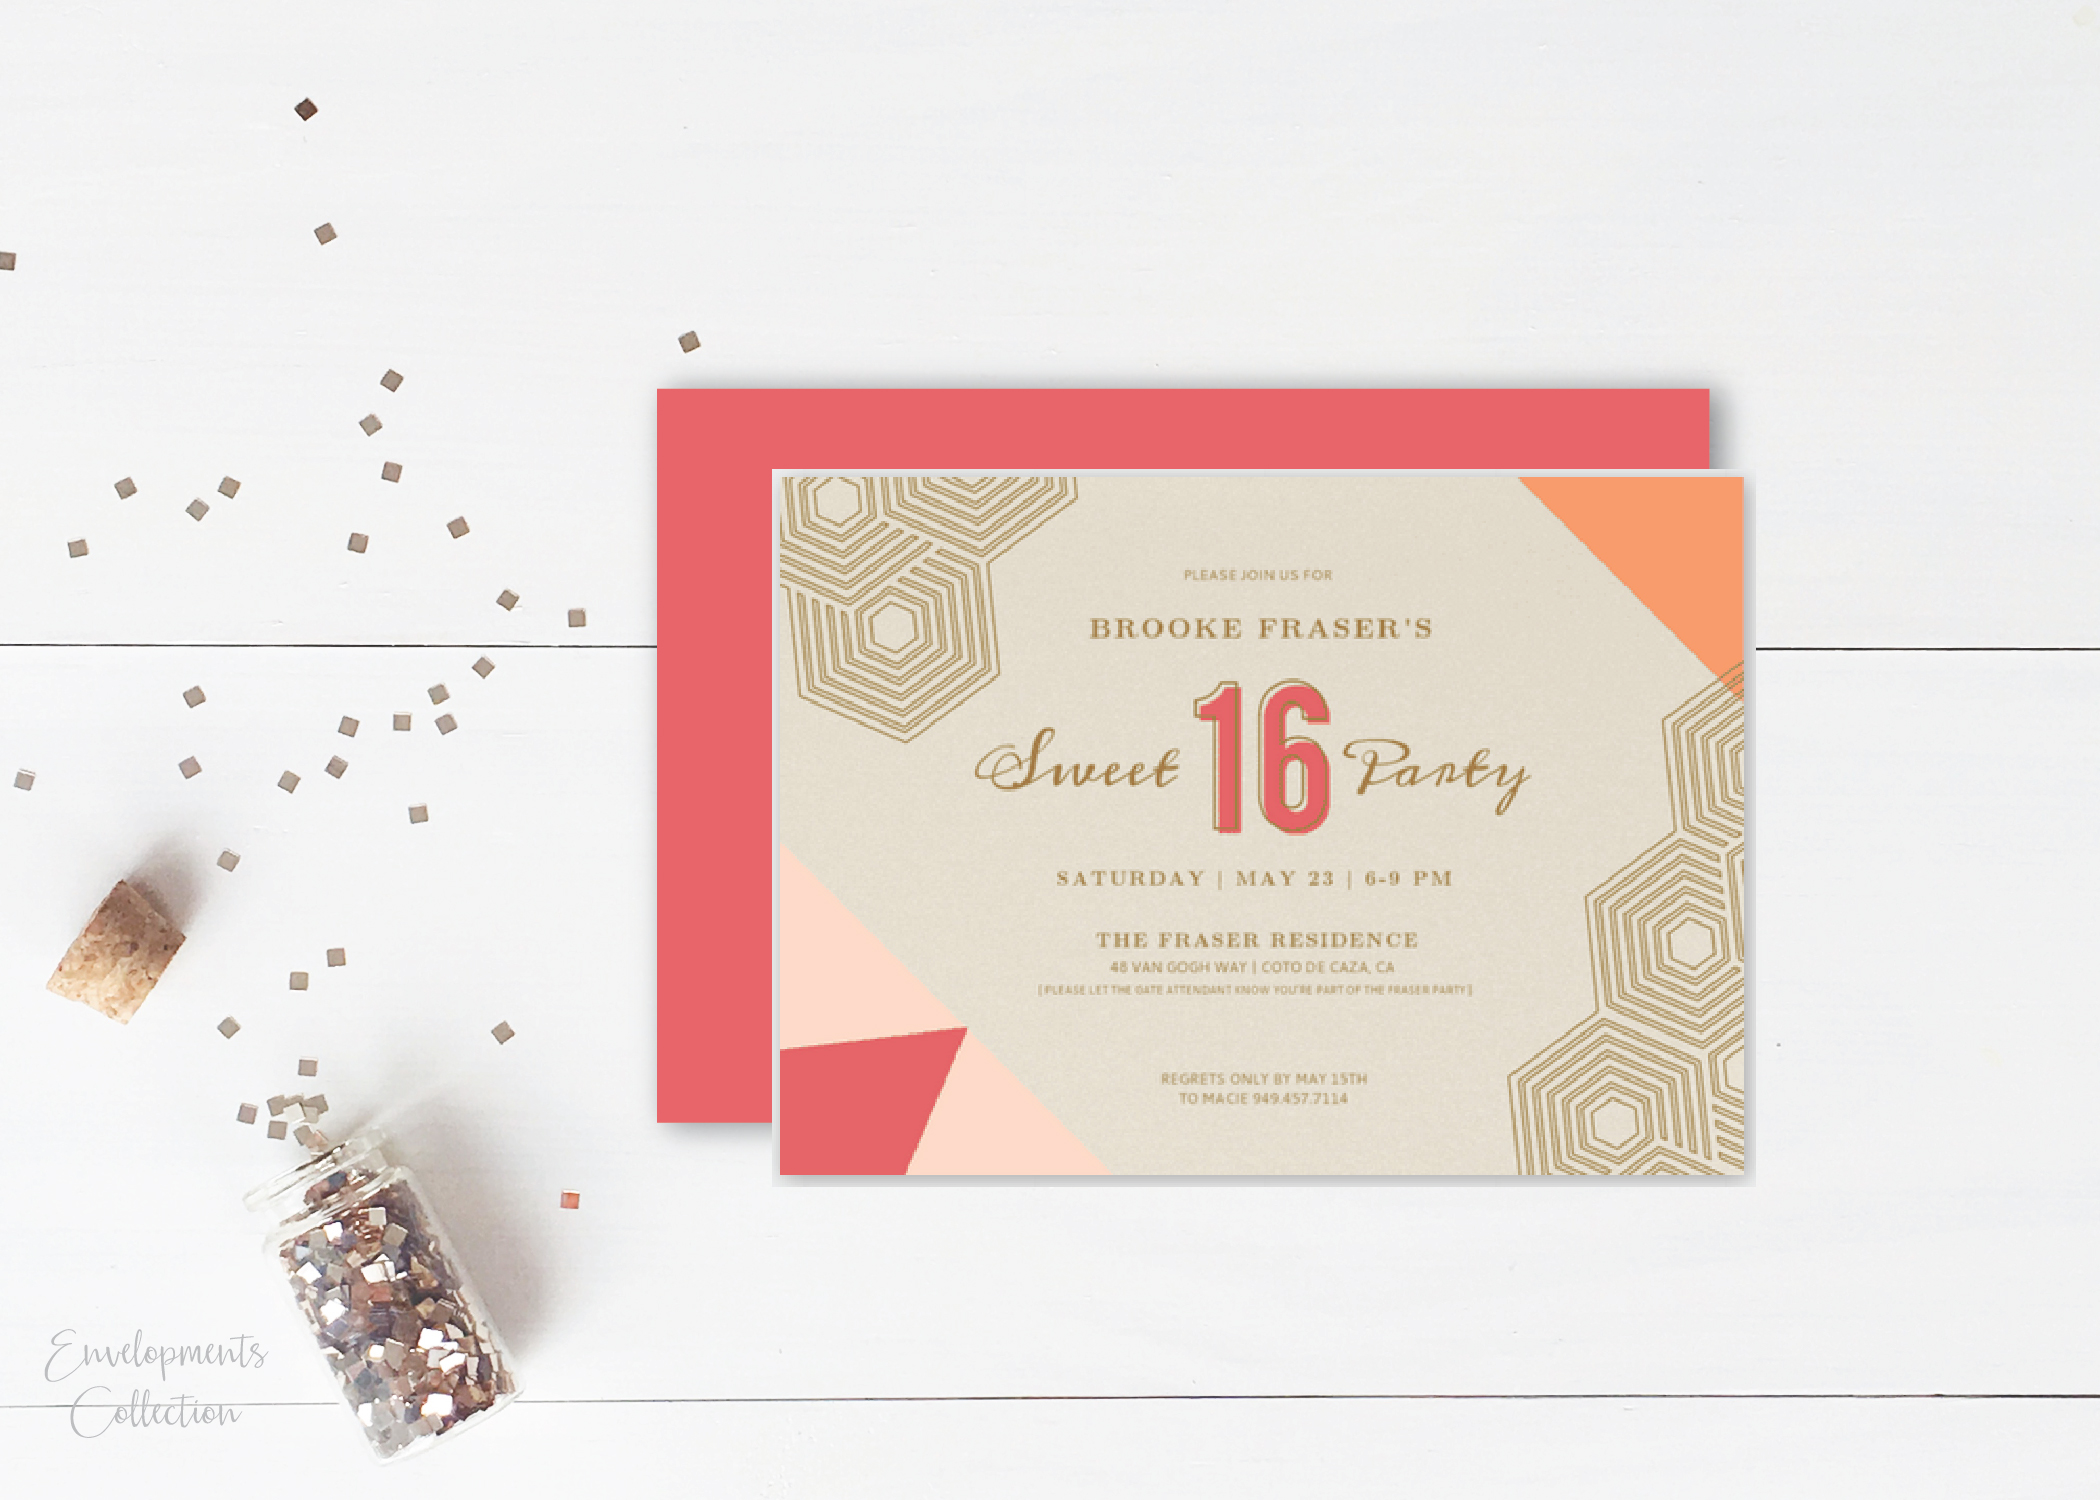 jsd birthday party invitations mitzvahs kid birthday_Master Left copy 17.jpg